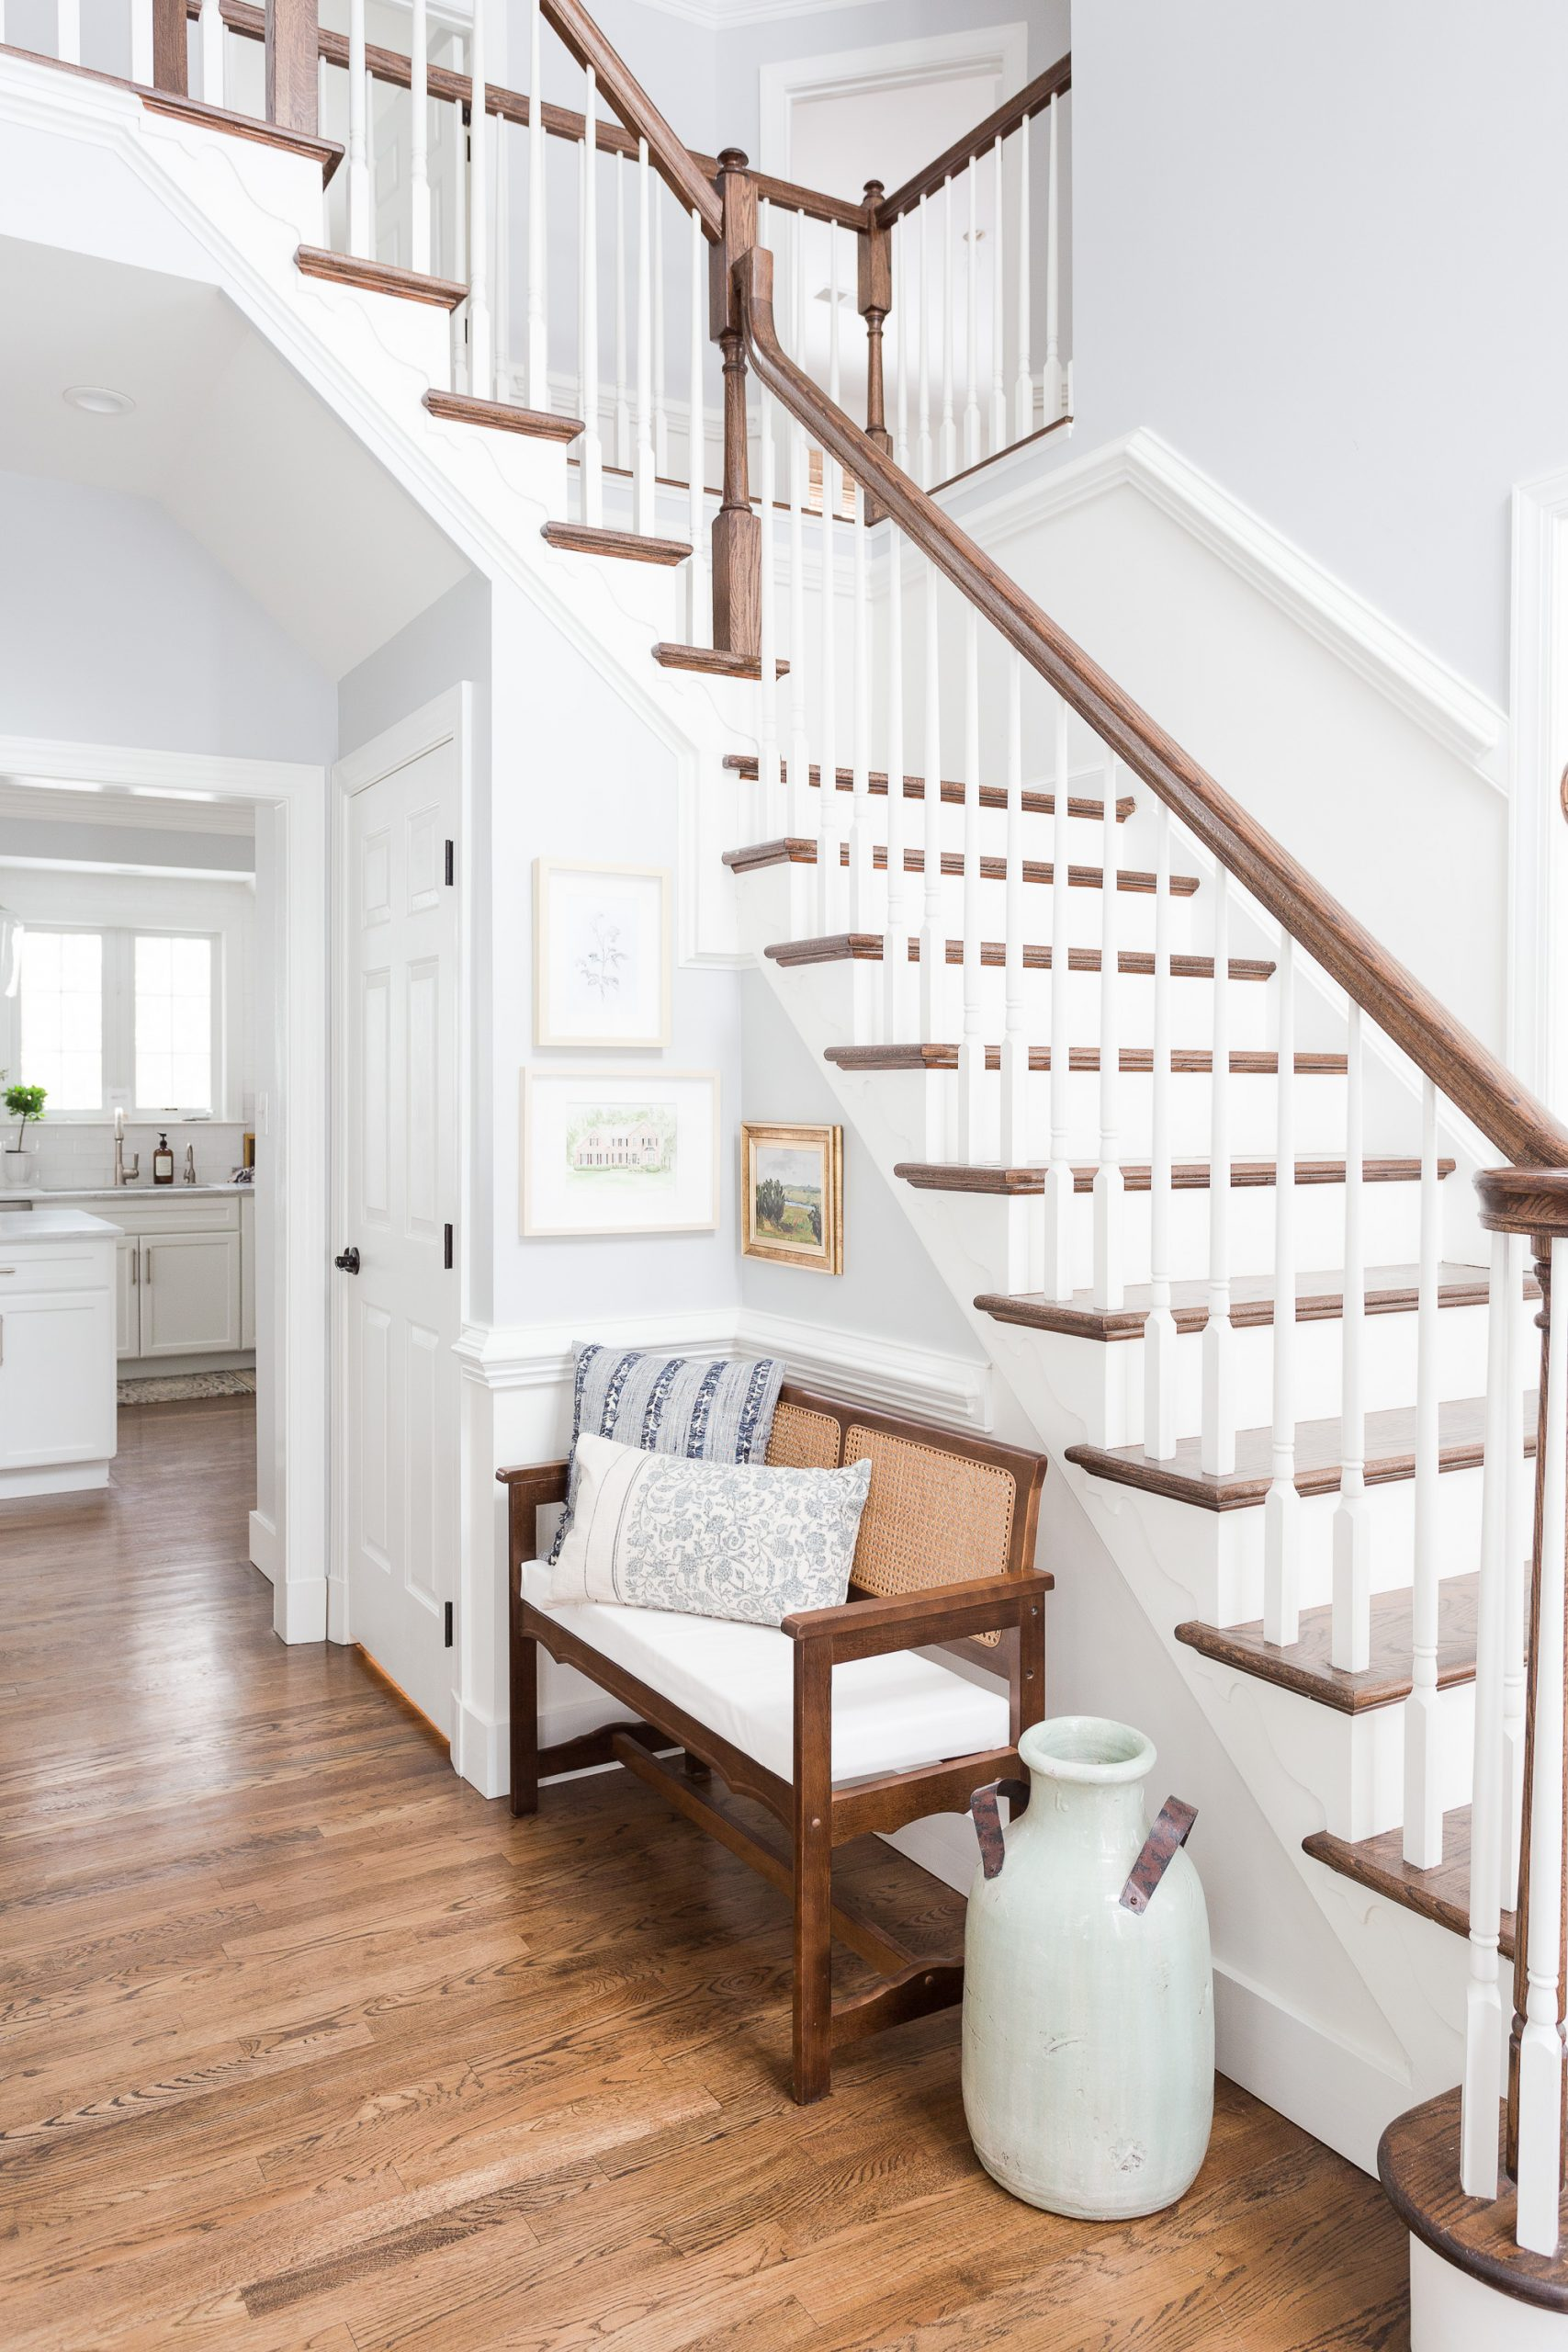 entryway of home with wood stair and white dove paint on walls